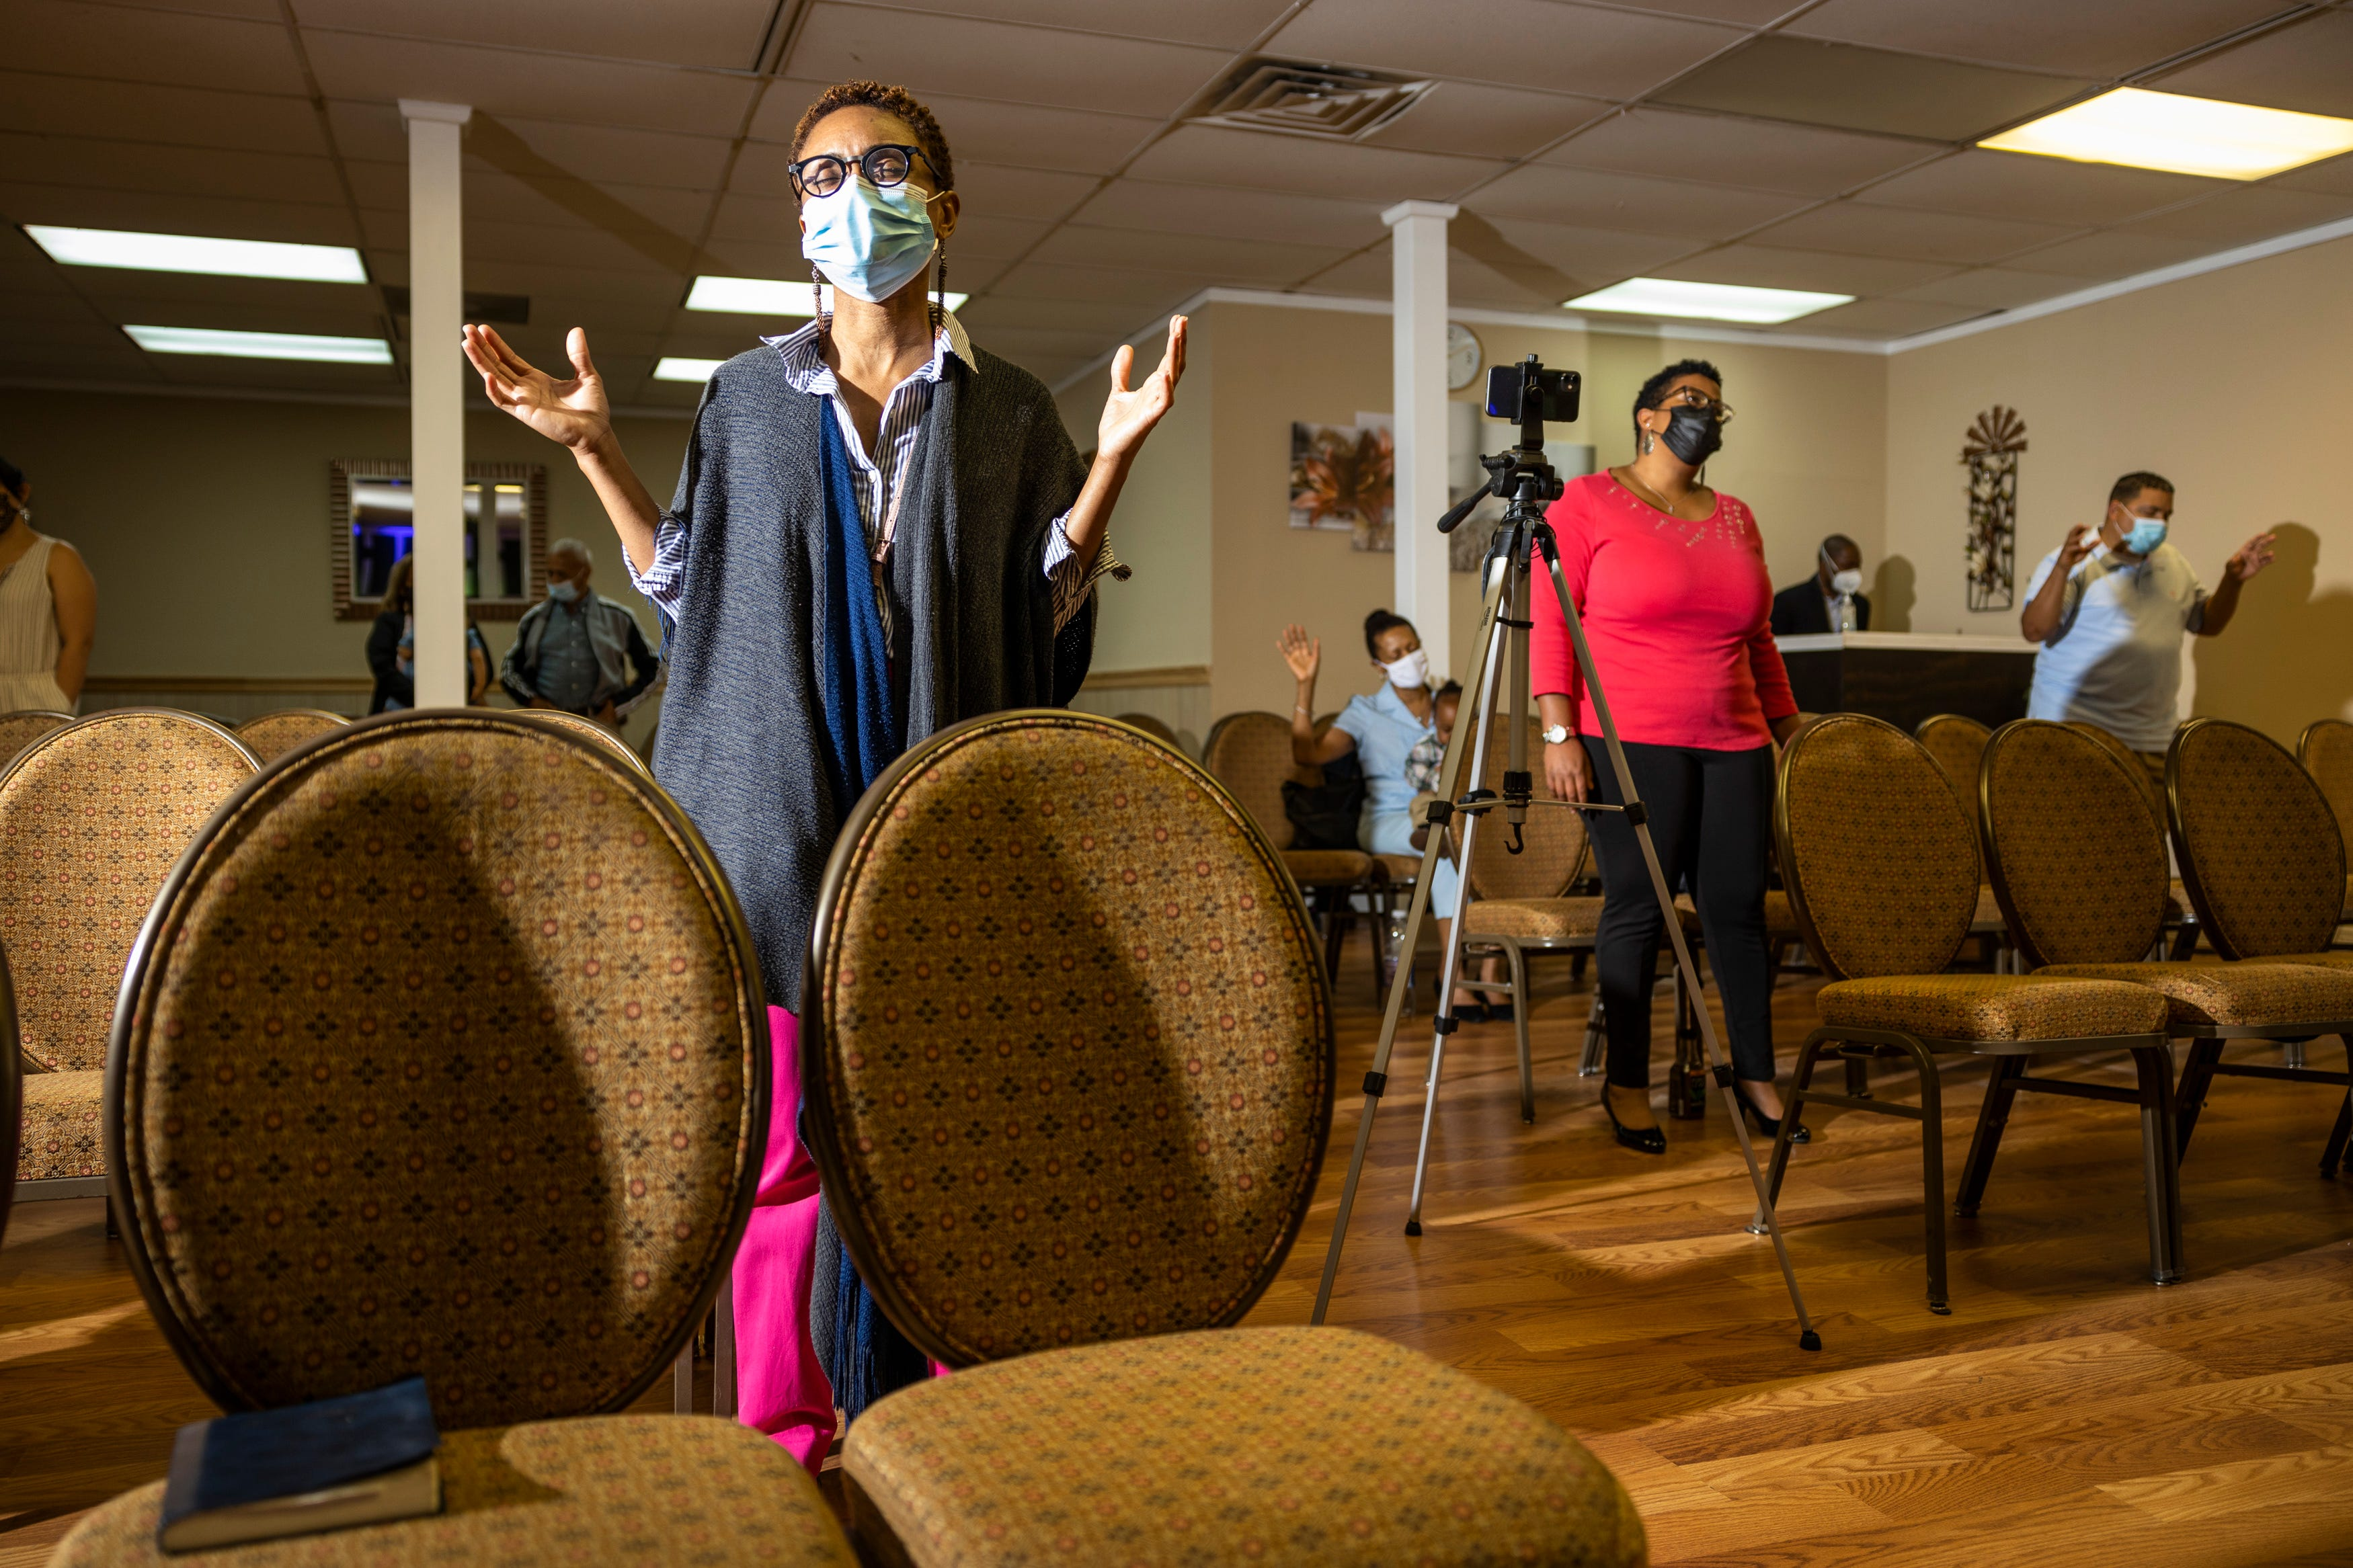 Kertrina Watson Lewis, 43, worships at Impact Ministries of New Orleans , her first time attending an in-person church service since the beginning of the pandemic on Sunday, April 18, 2021. The pastor of the church, Dr. Stacy Greene, is an infectious disease specialist.